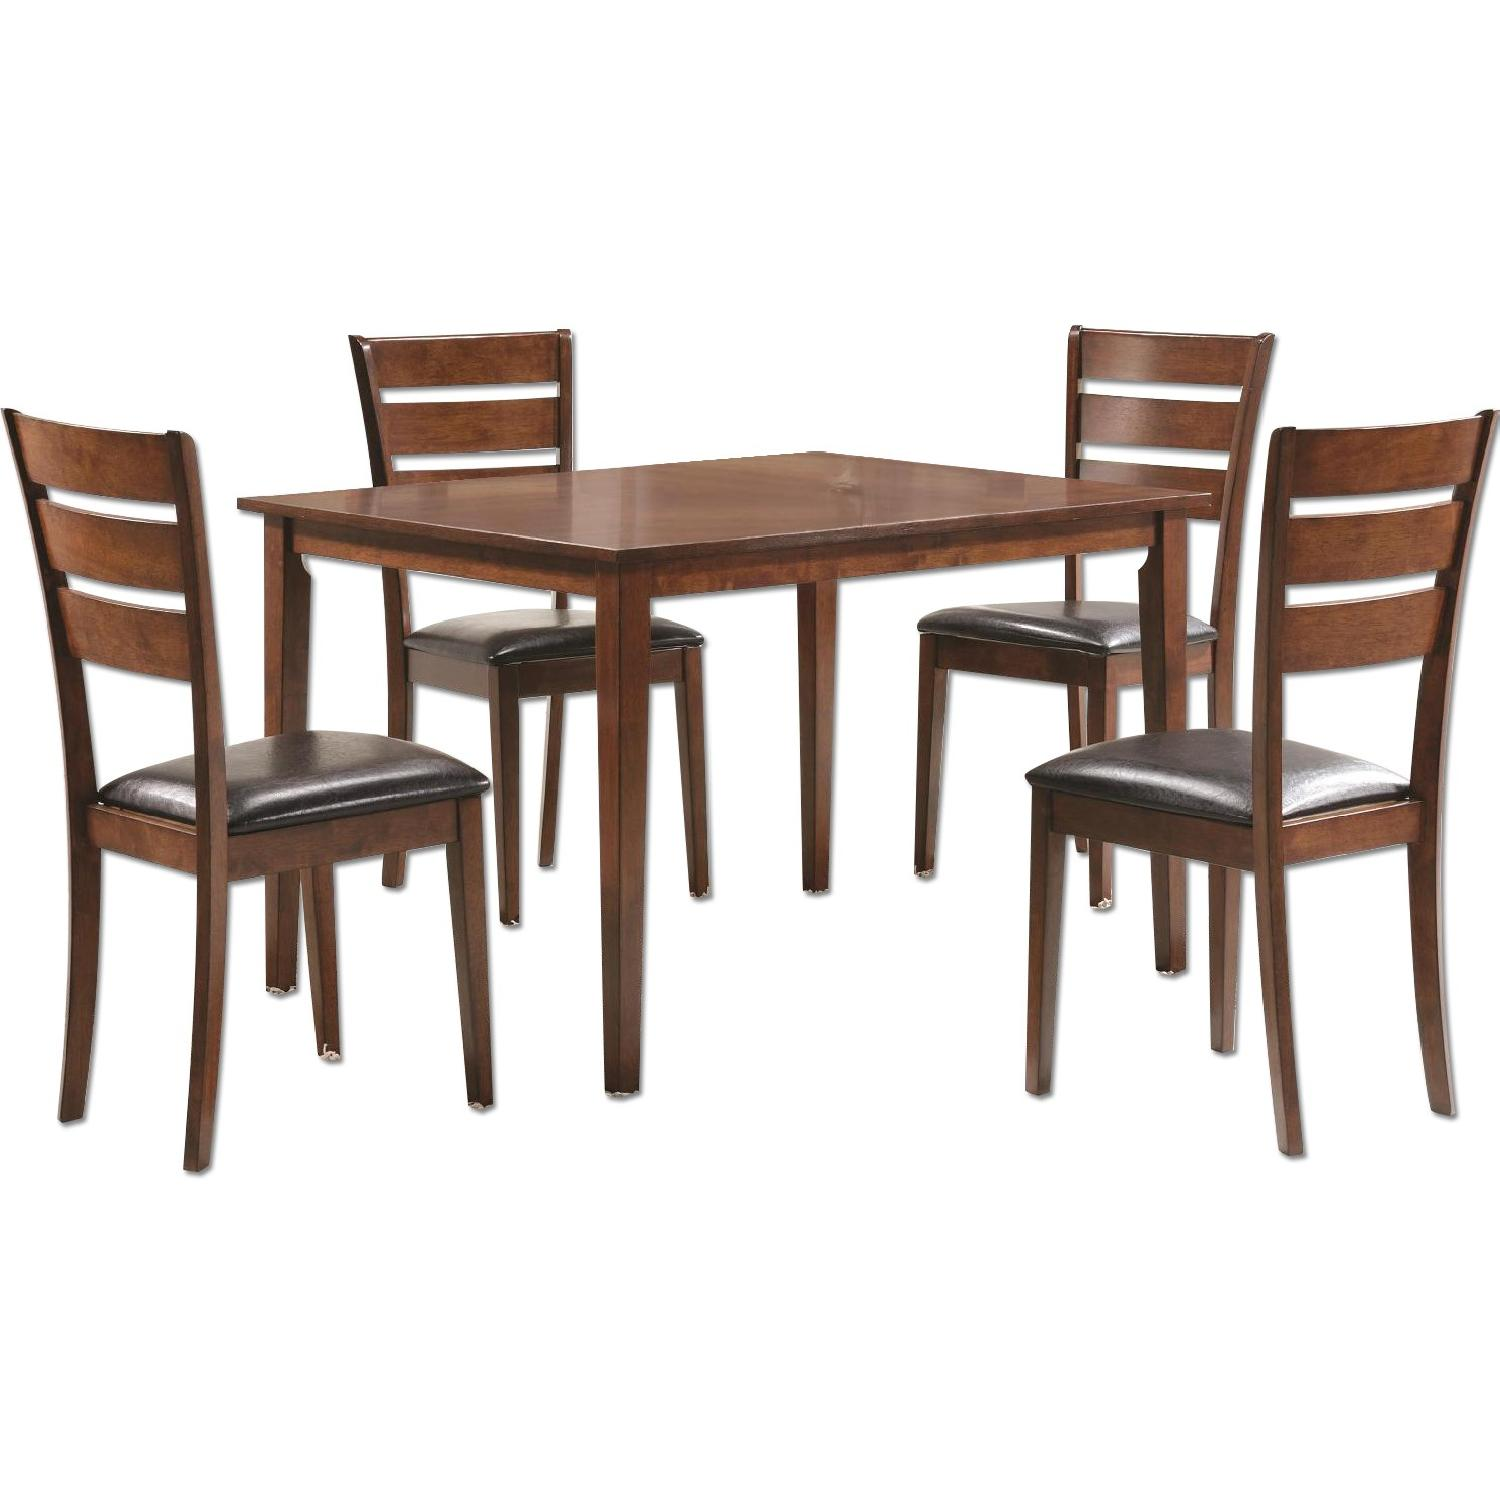 5 Piece Dining Set in Medium Warm Brown Finish - image-0